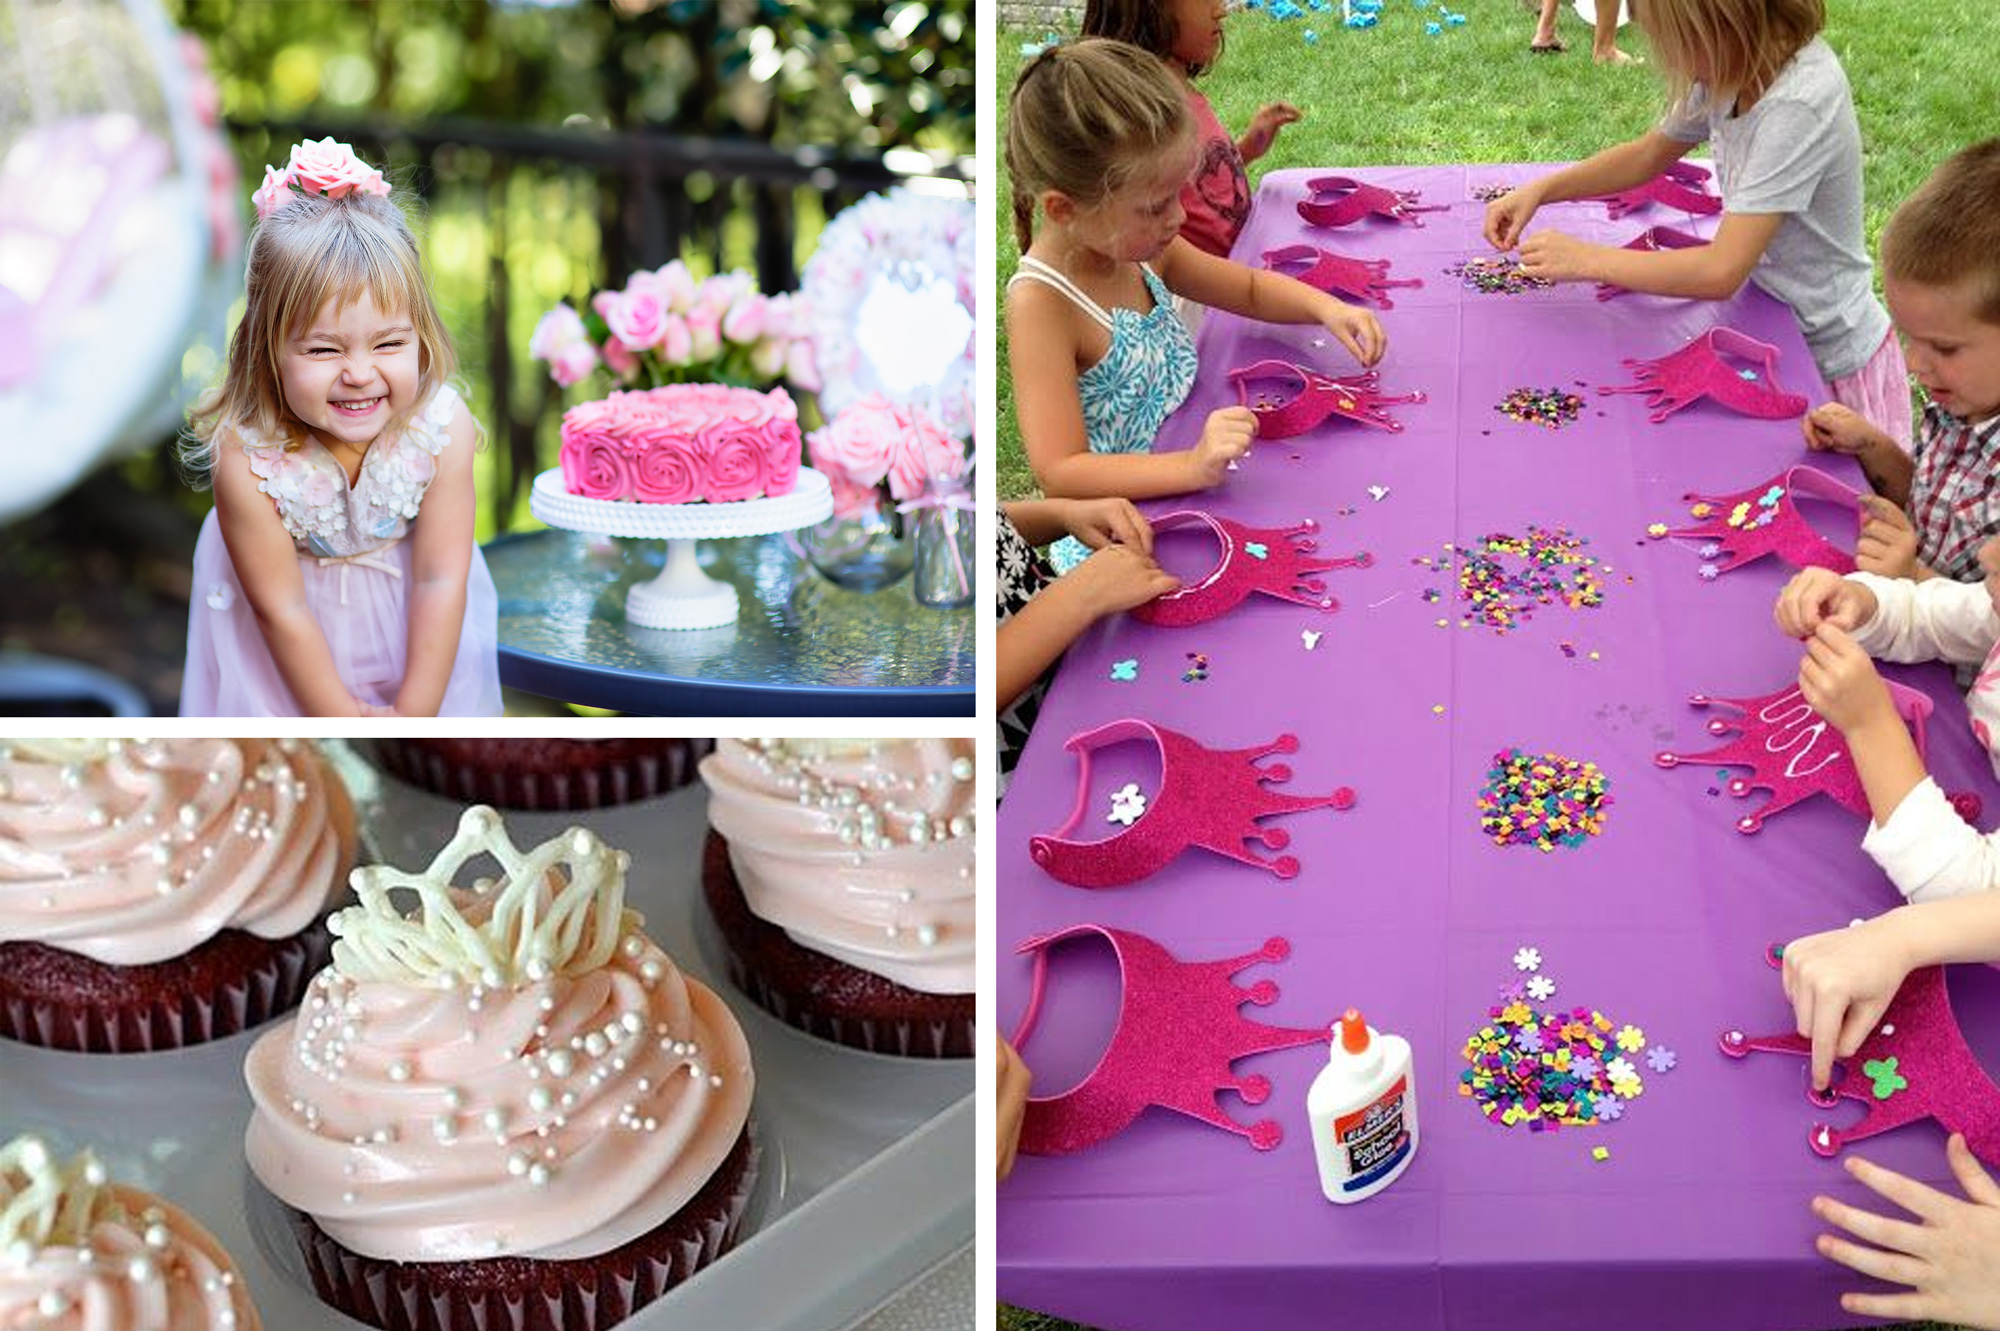 https://tadaaz.be/blog/wp-content/uploads/2016/04/kinderfeestje-prinsessenfeest-kader.jpg